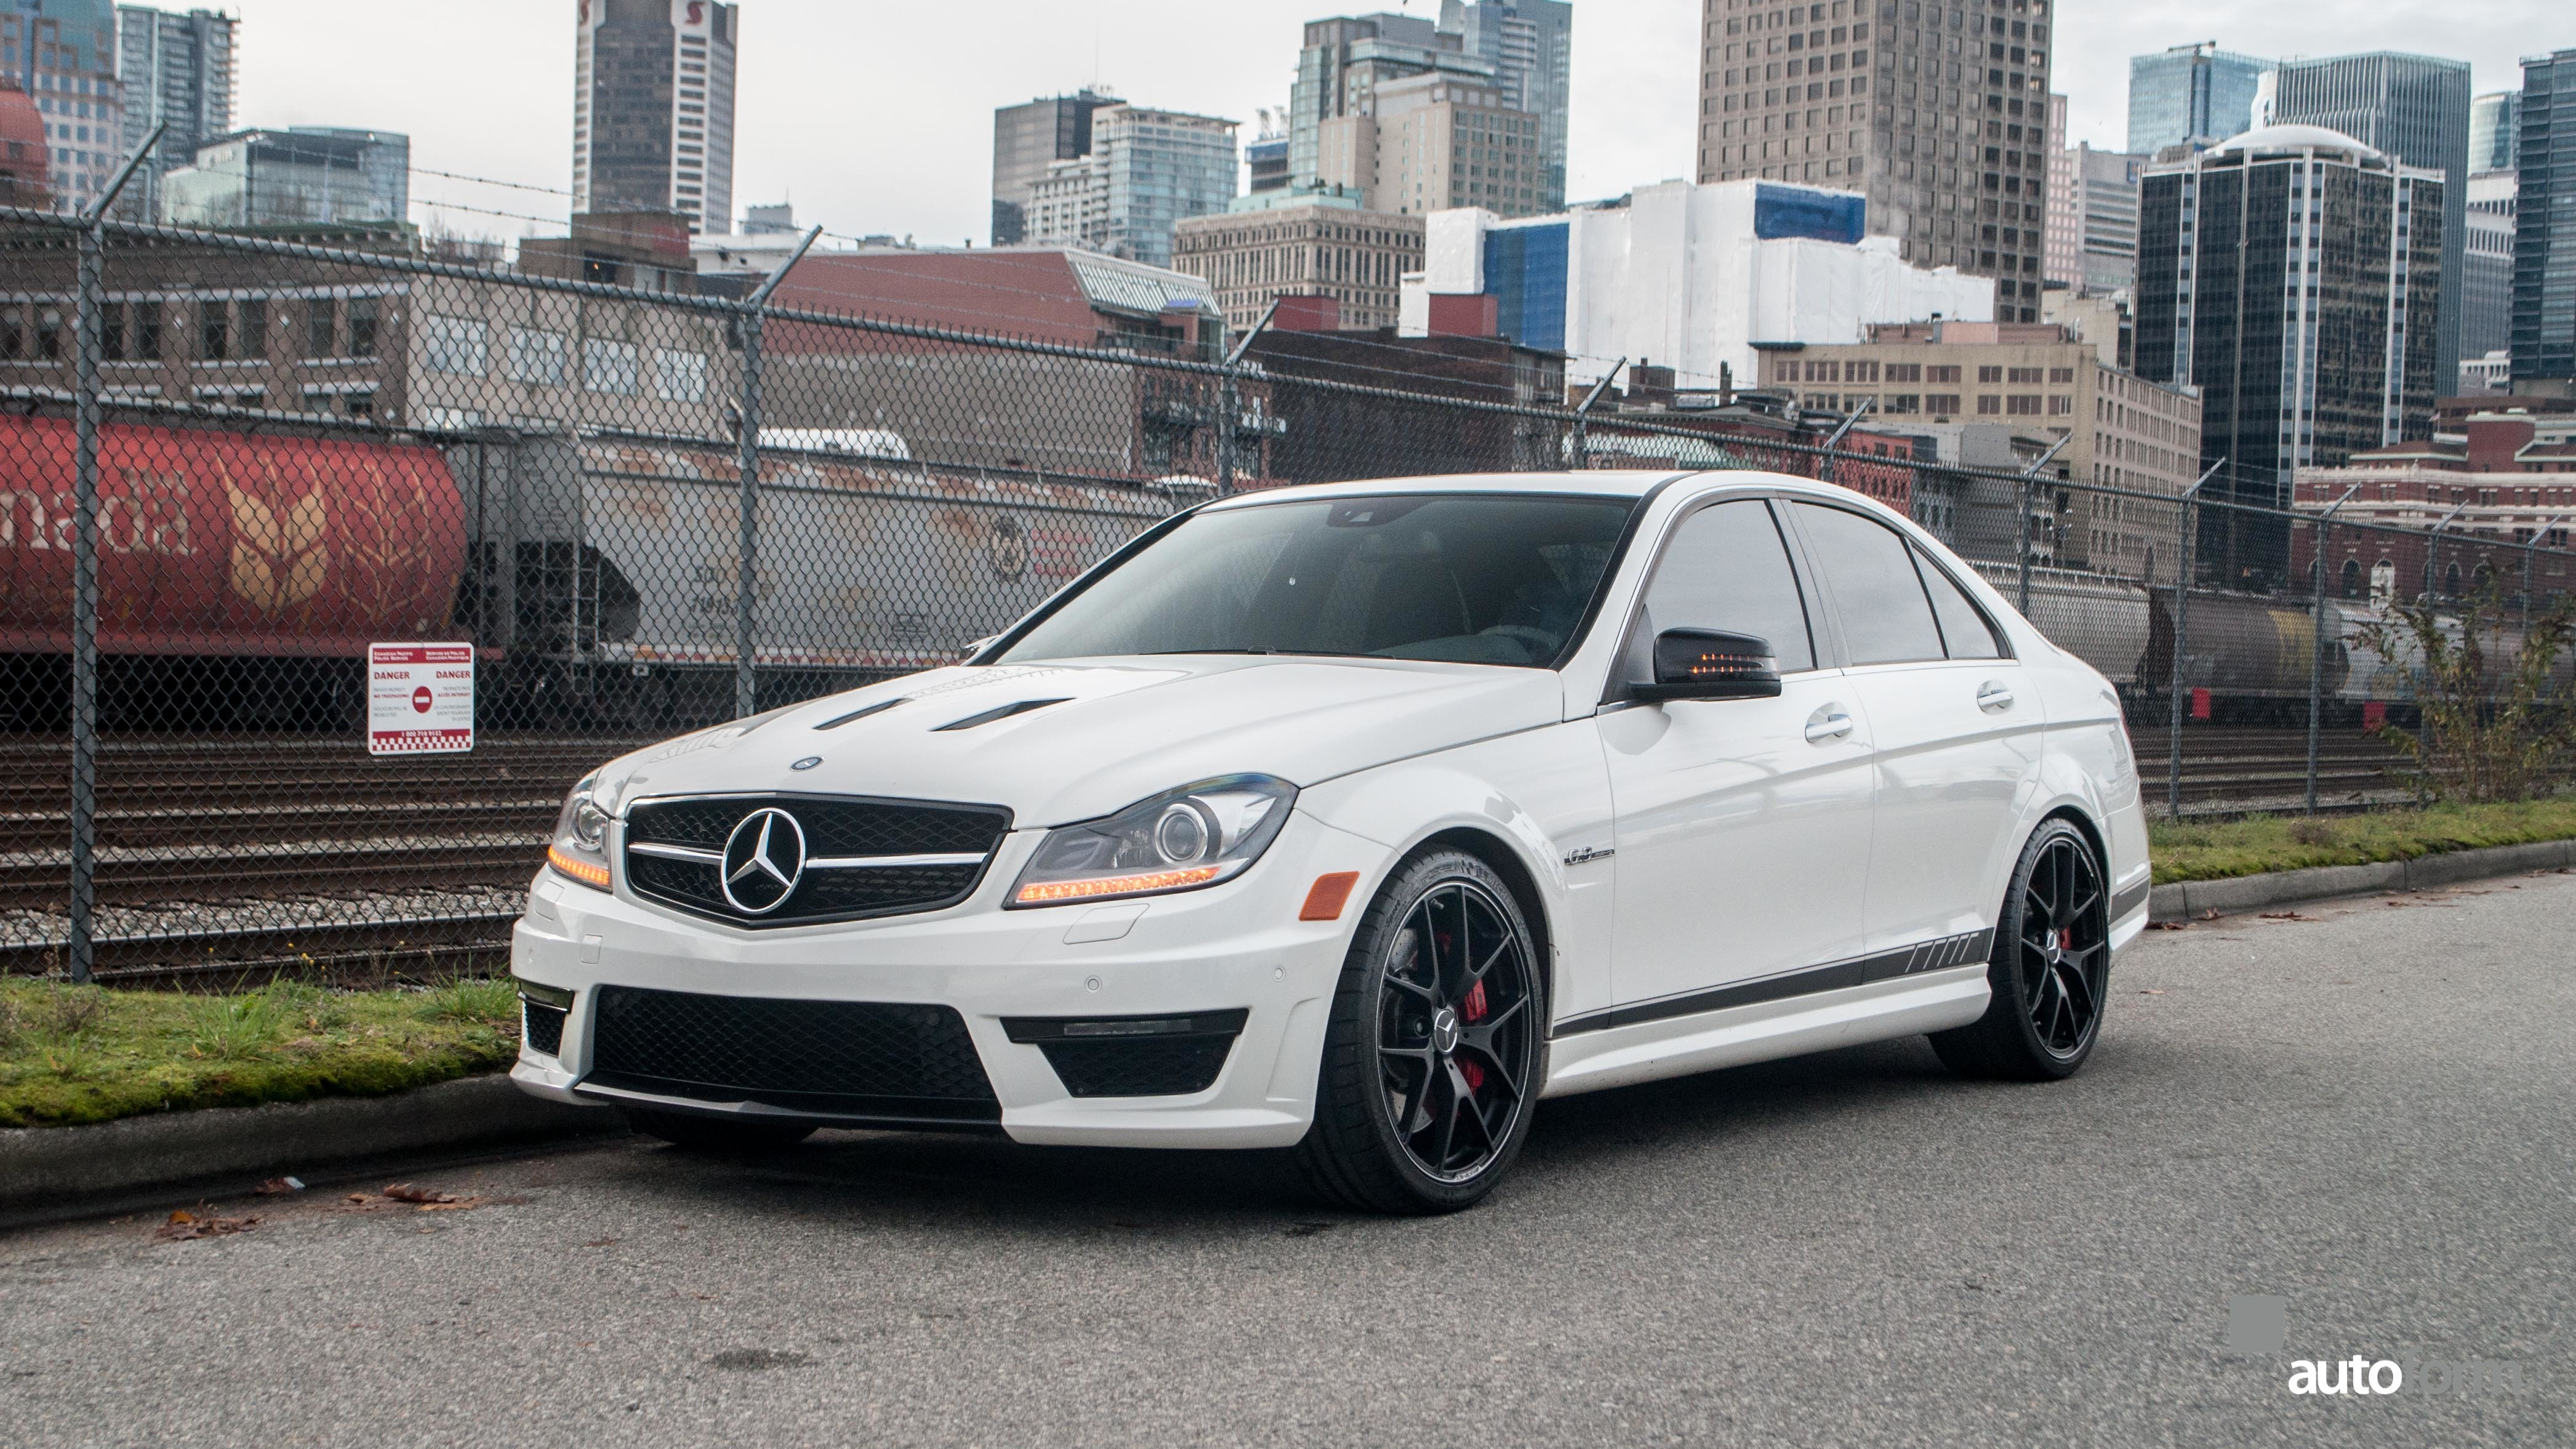 2014 mercedes benz c63 amg 507 edition autoform. Black Bedroom Furniture Sets. Home Design Ideas